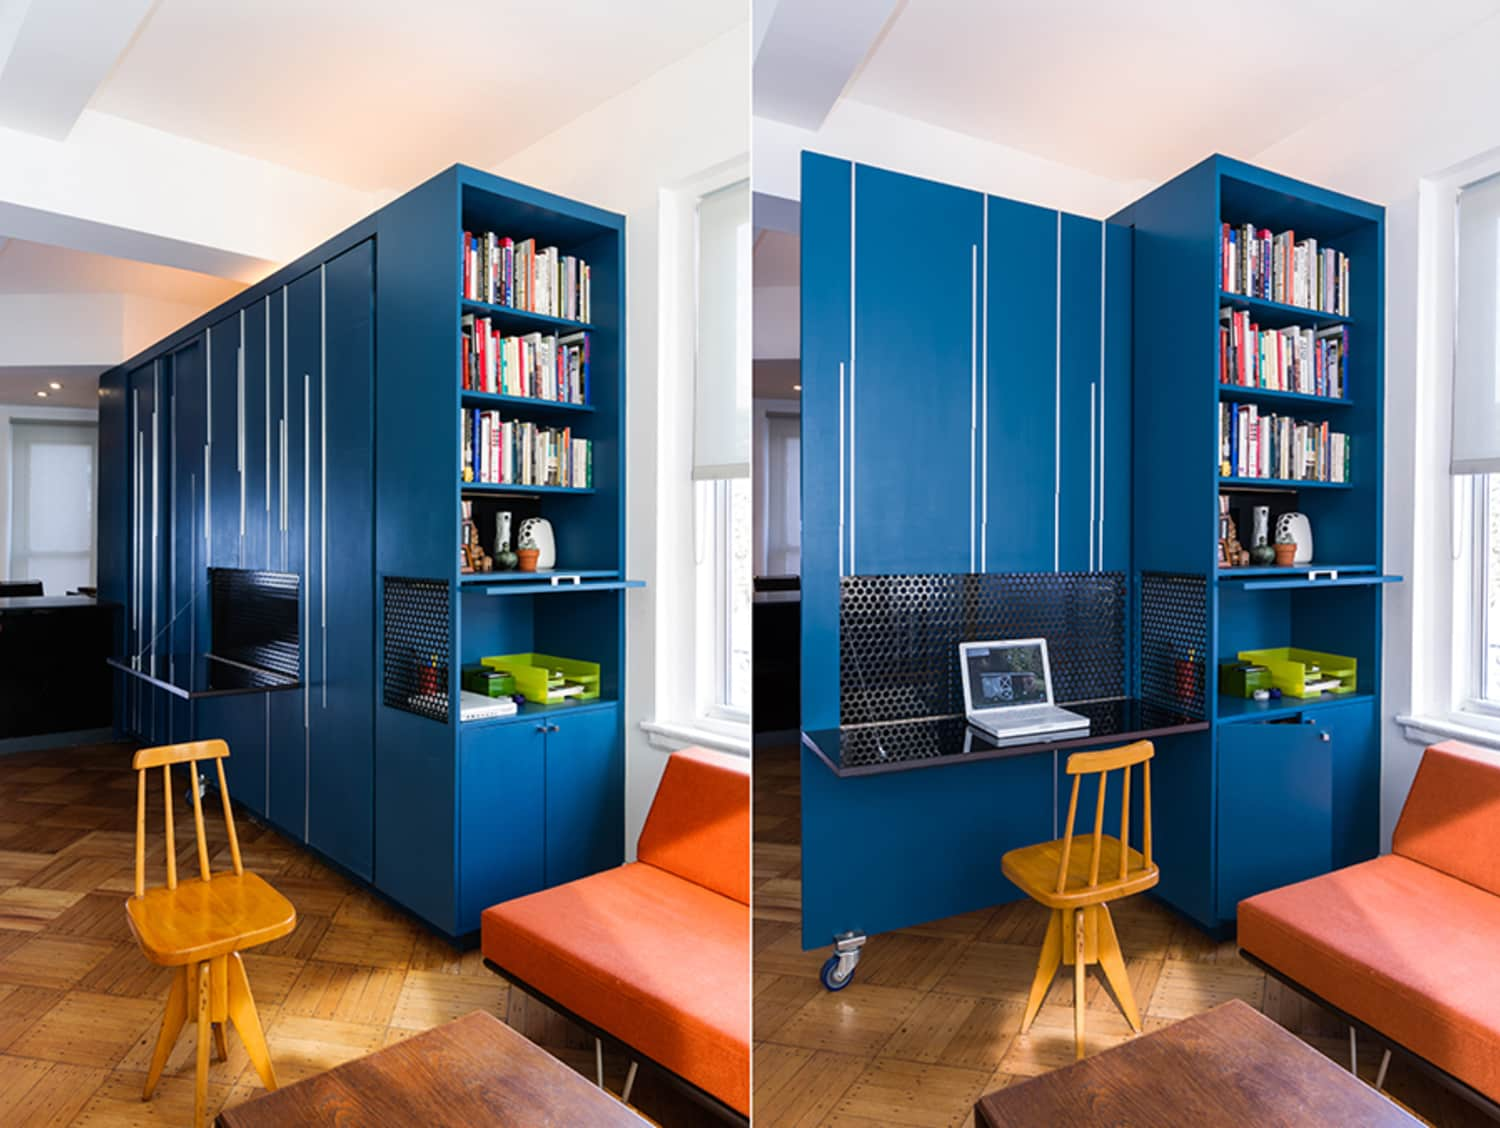 Ingenious Ideas for Fitting in a Small Workspace